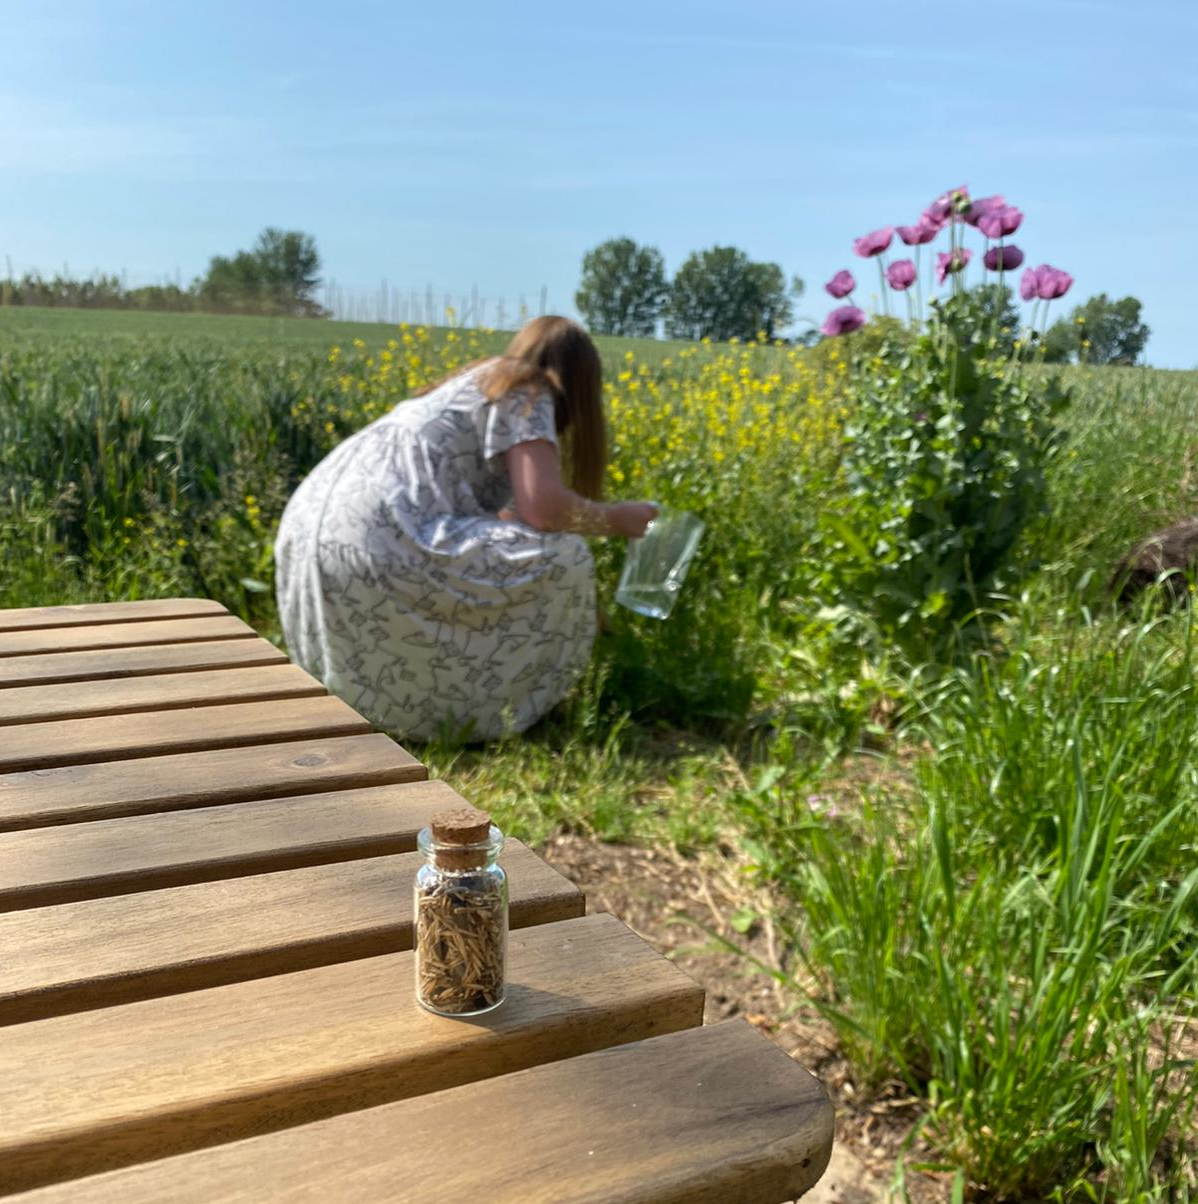 Amber sowing seeds in the Bombus garden